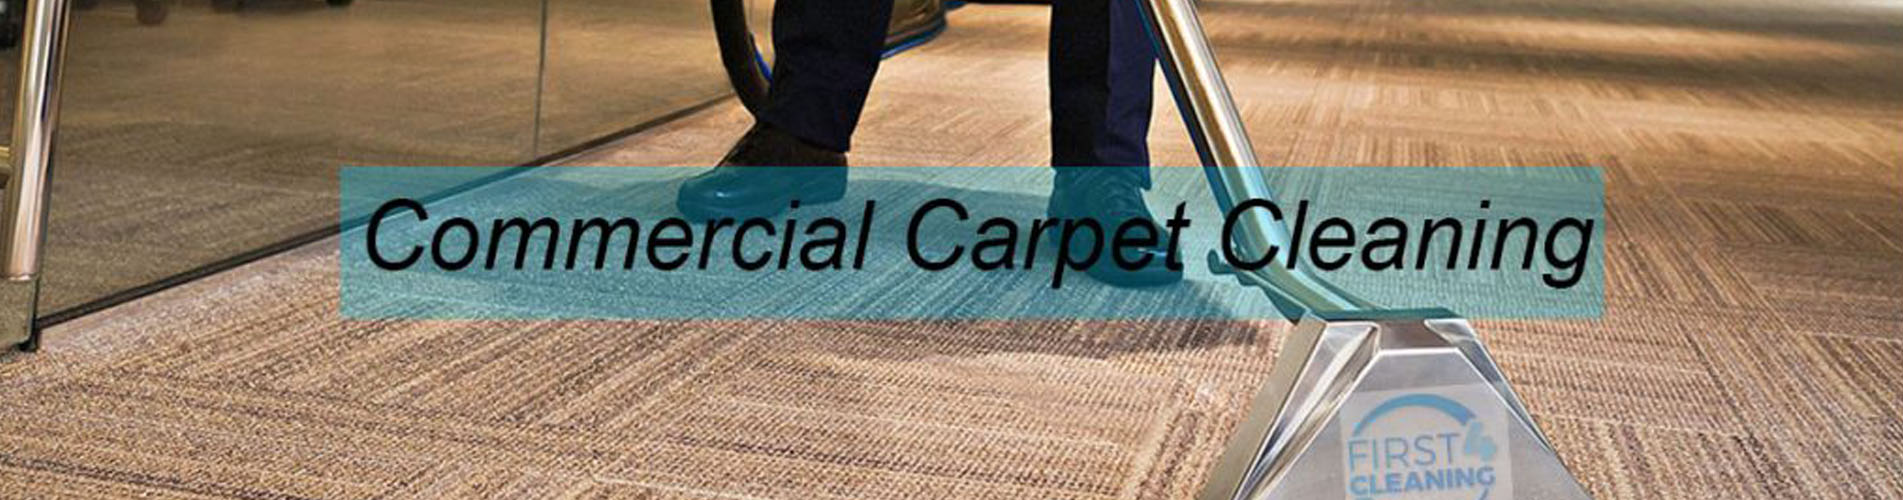 Commercial office carpet cleaning Stoke-on-Trent